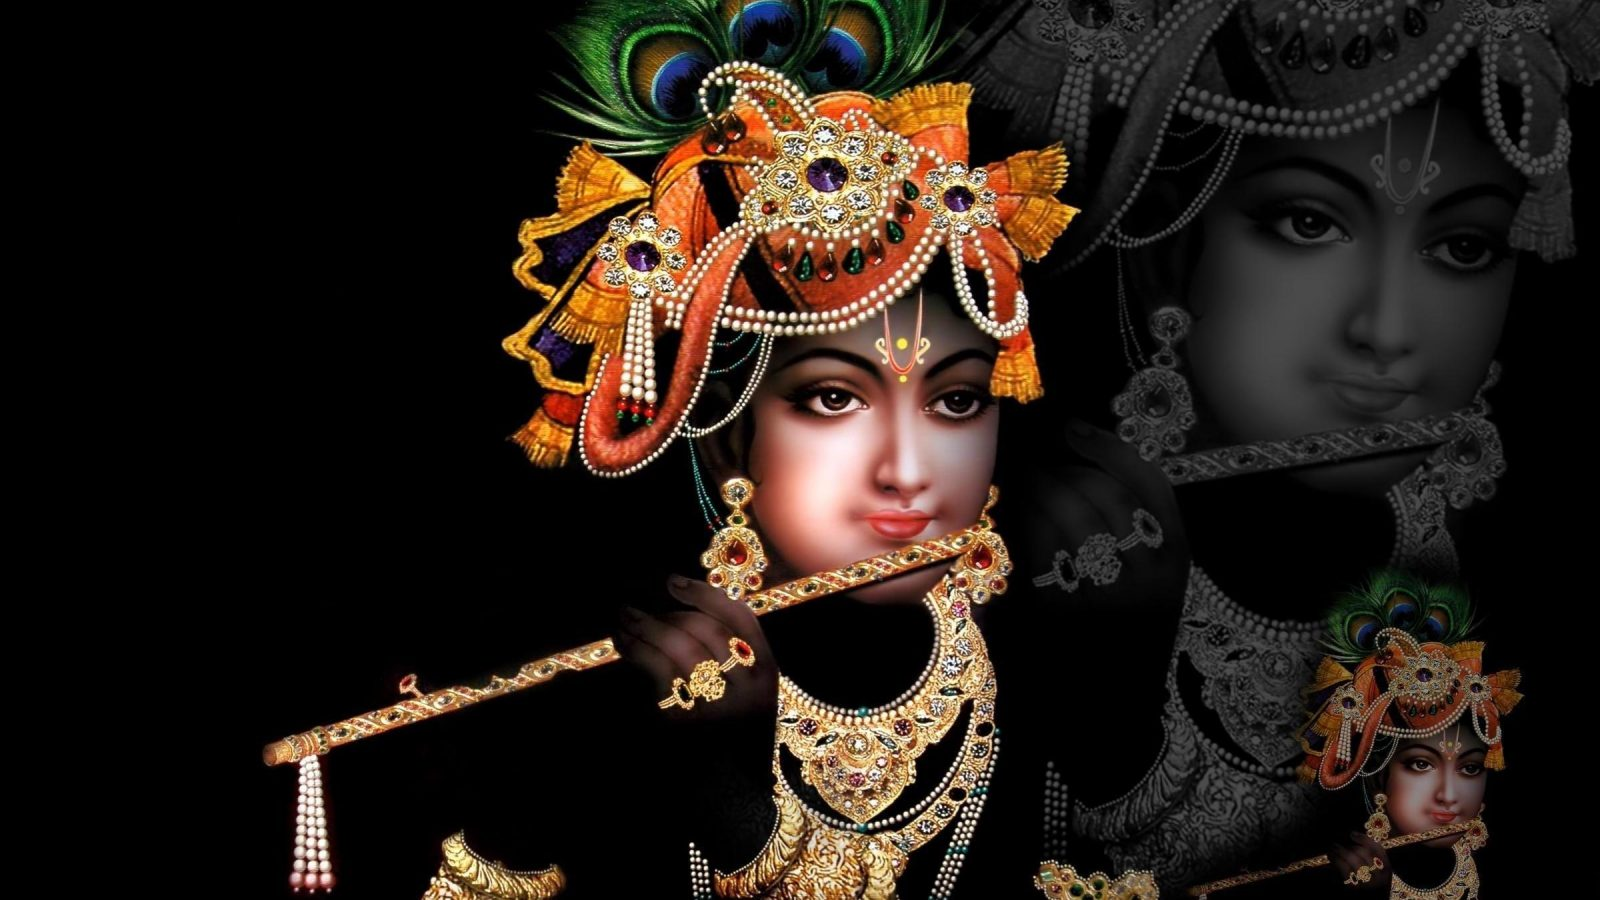 Free Animated Christmas Wallpaper For Iphone 5 Shri Krishna In Black Background Download Hd Wallpaper